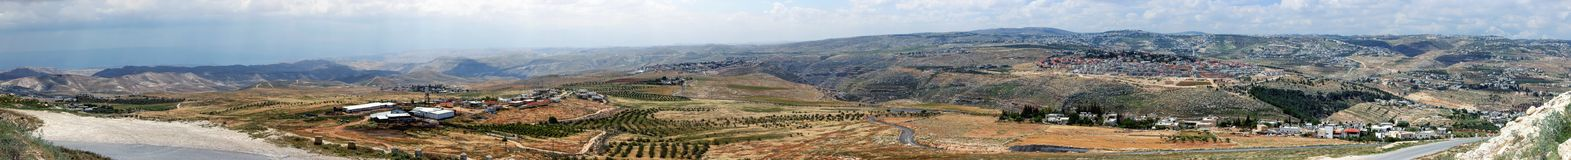 Judaean Desert near  to Jerusalem, Israel. Panoramic view from Herodium Herodion Fortress wall. Royalty Free Stock Images